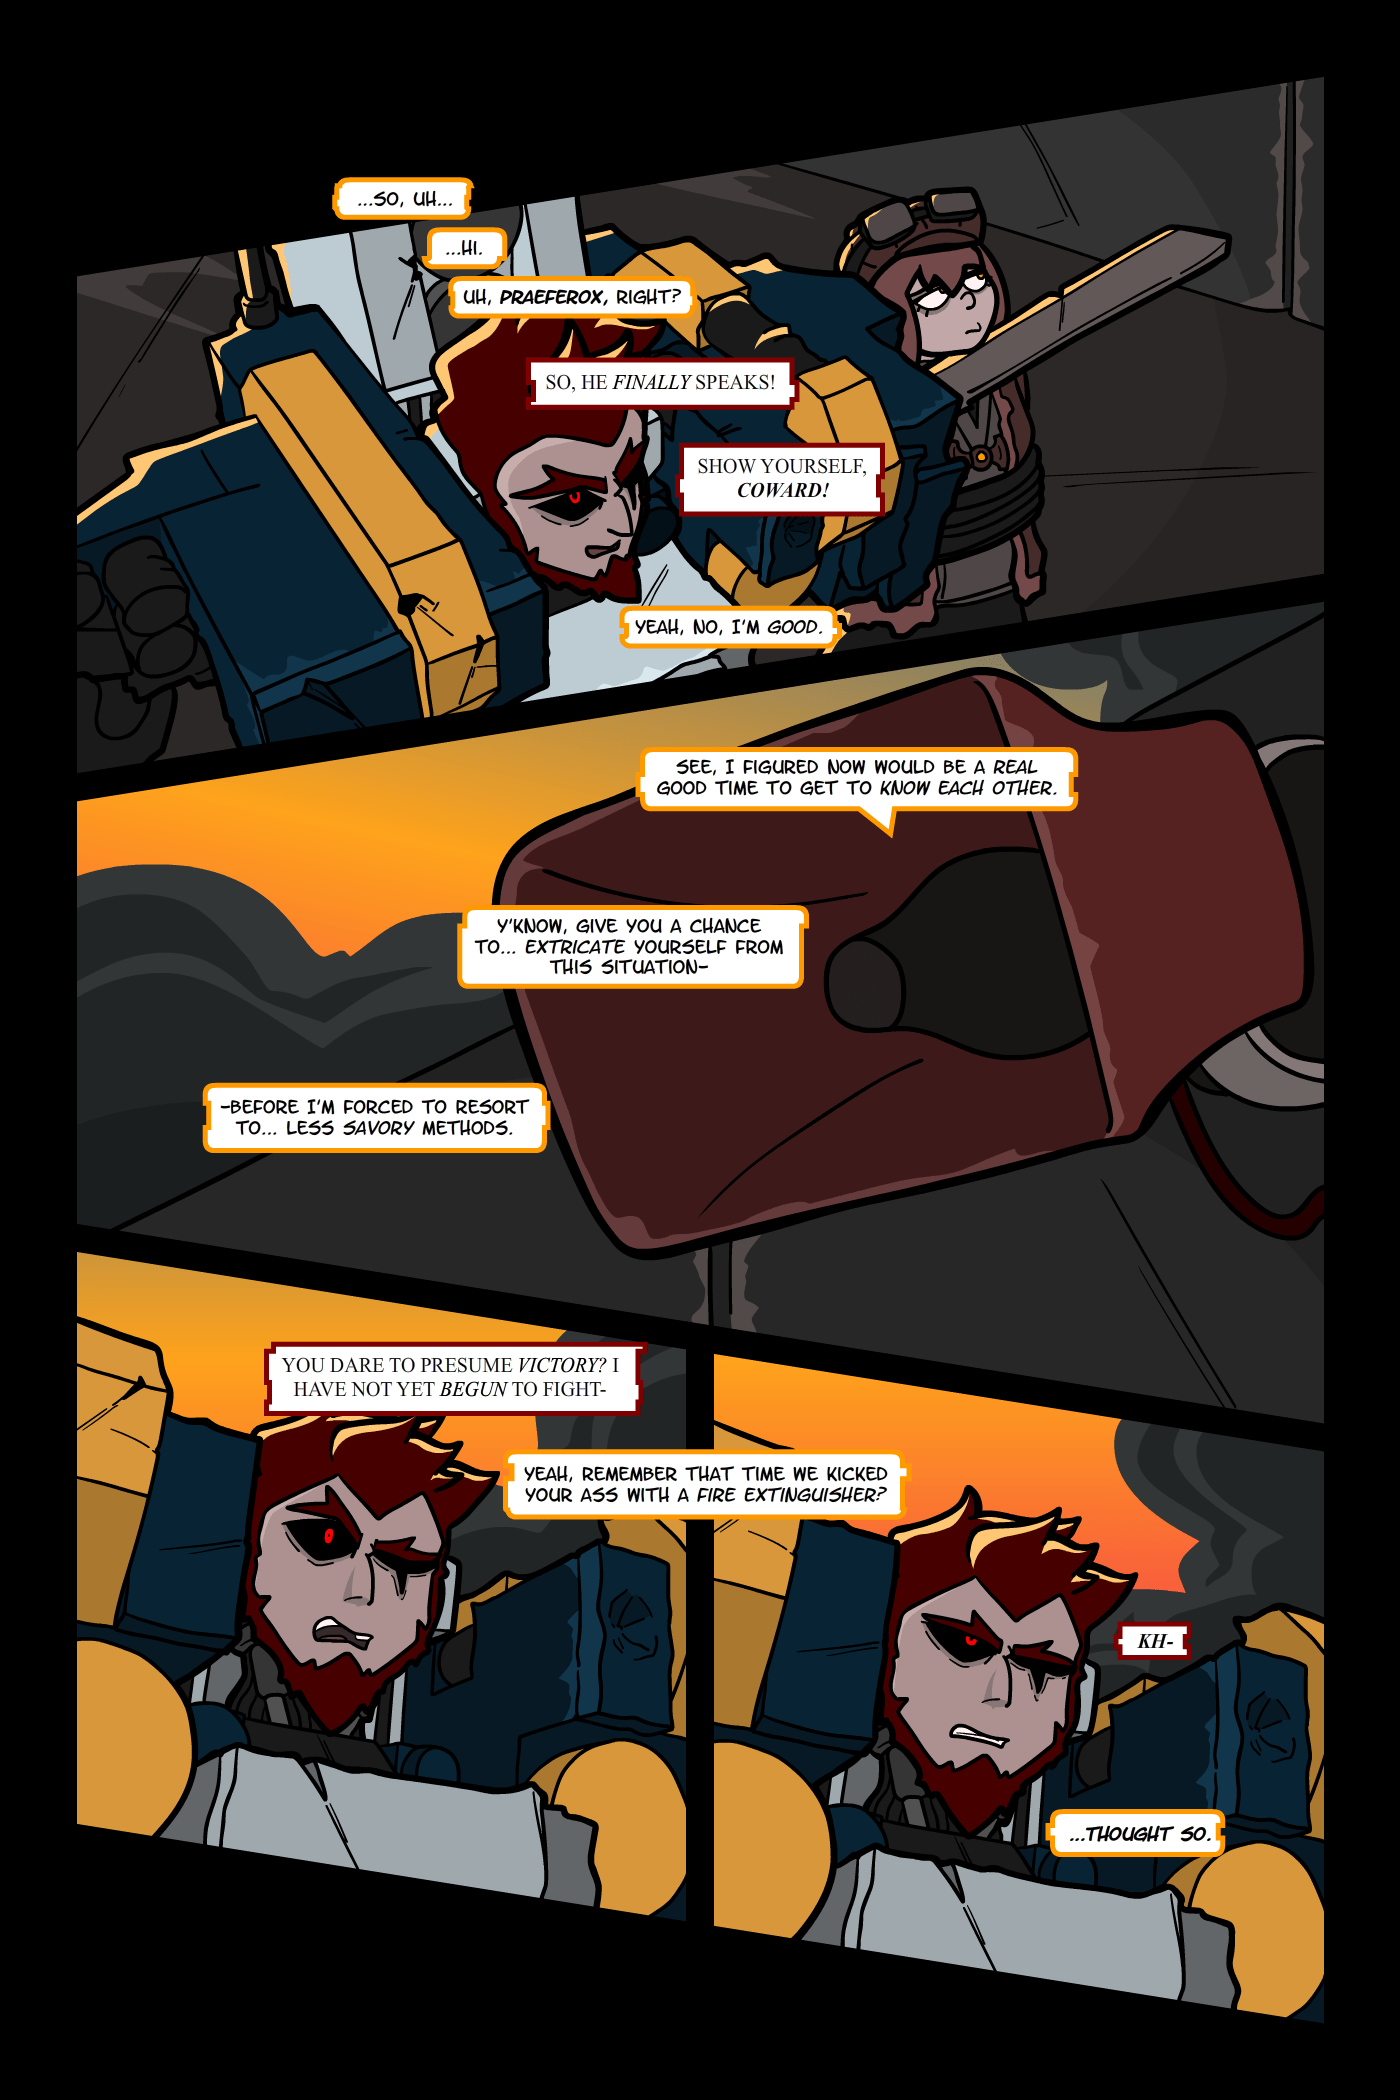 see: chapter 2, page 54